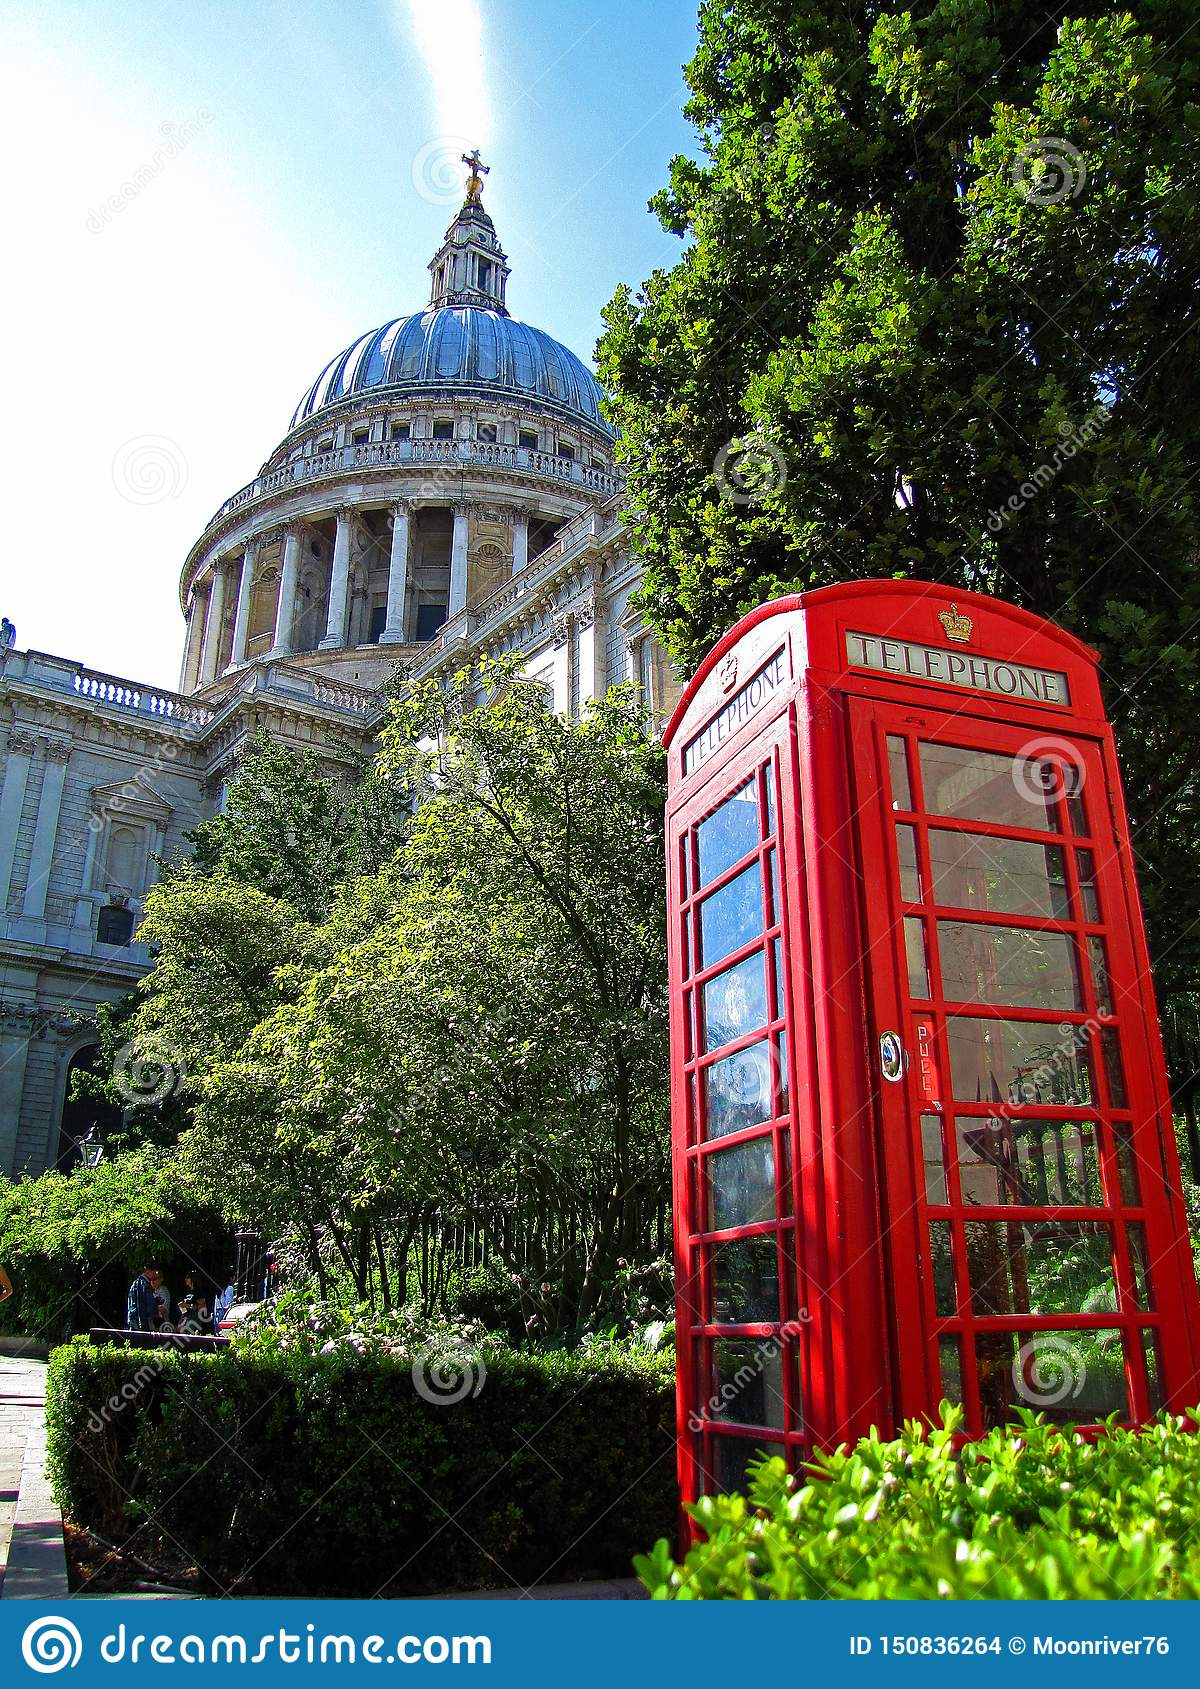 Red phone booth and St. Pauls Cathedral in London